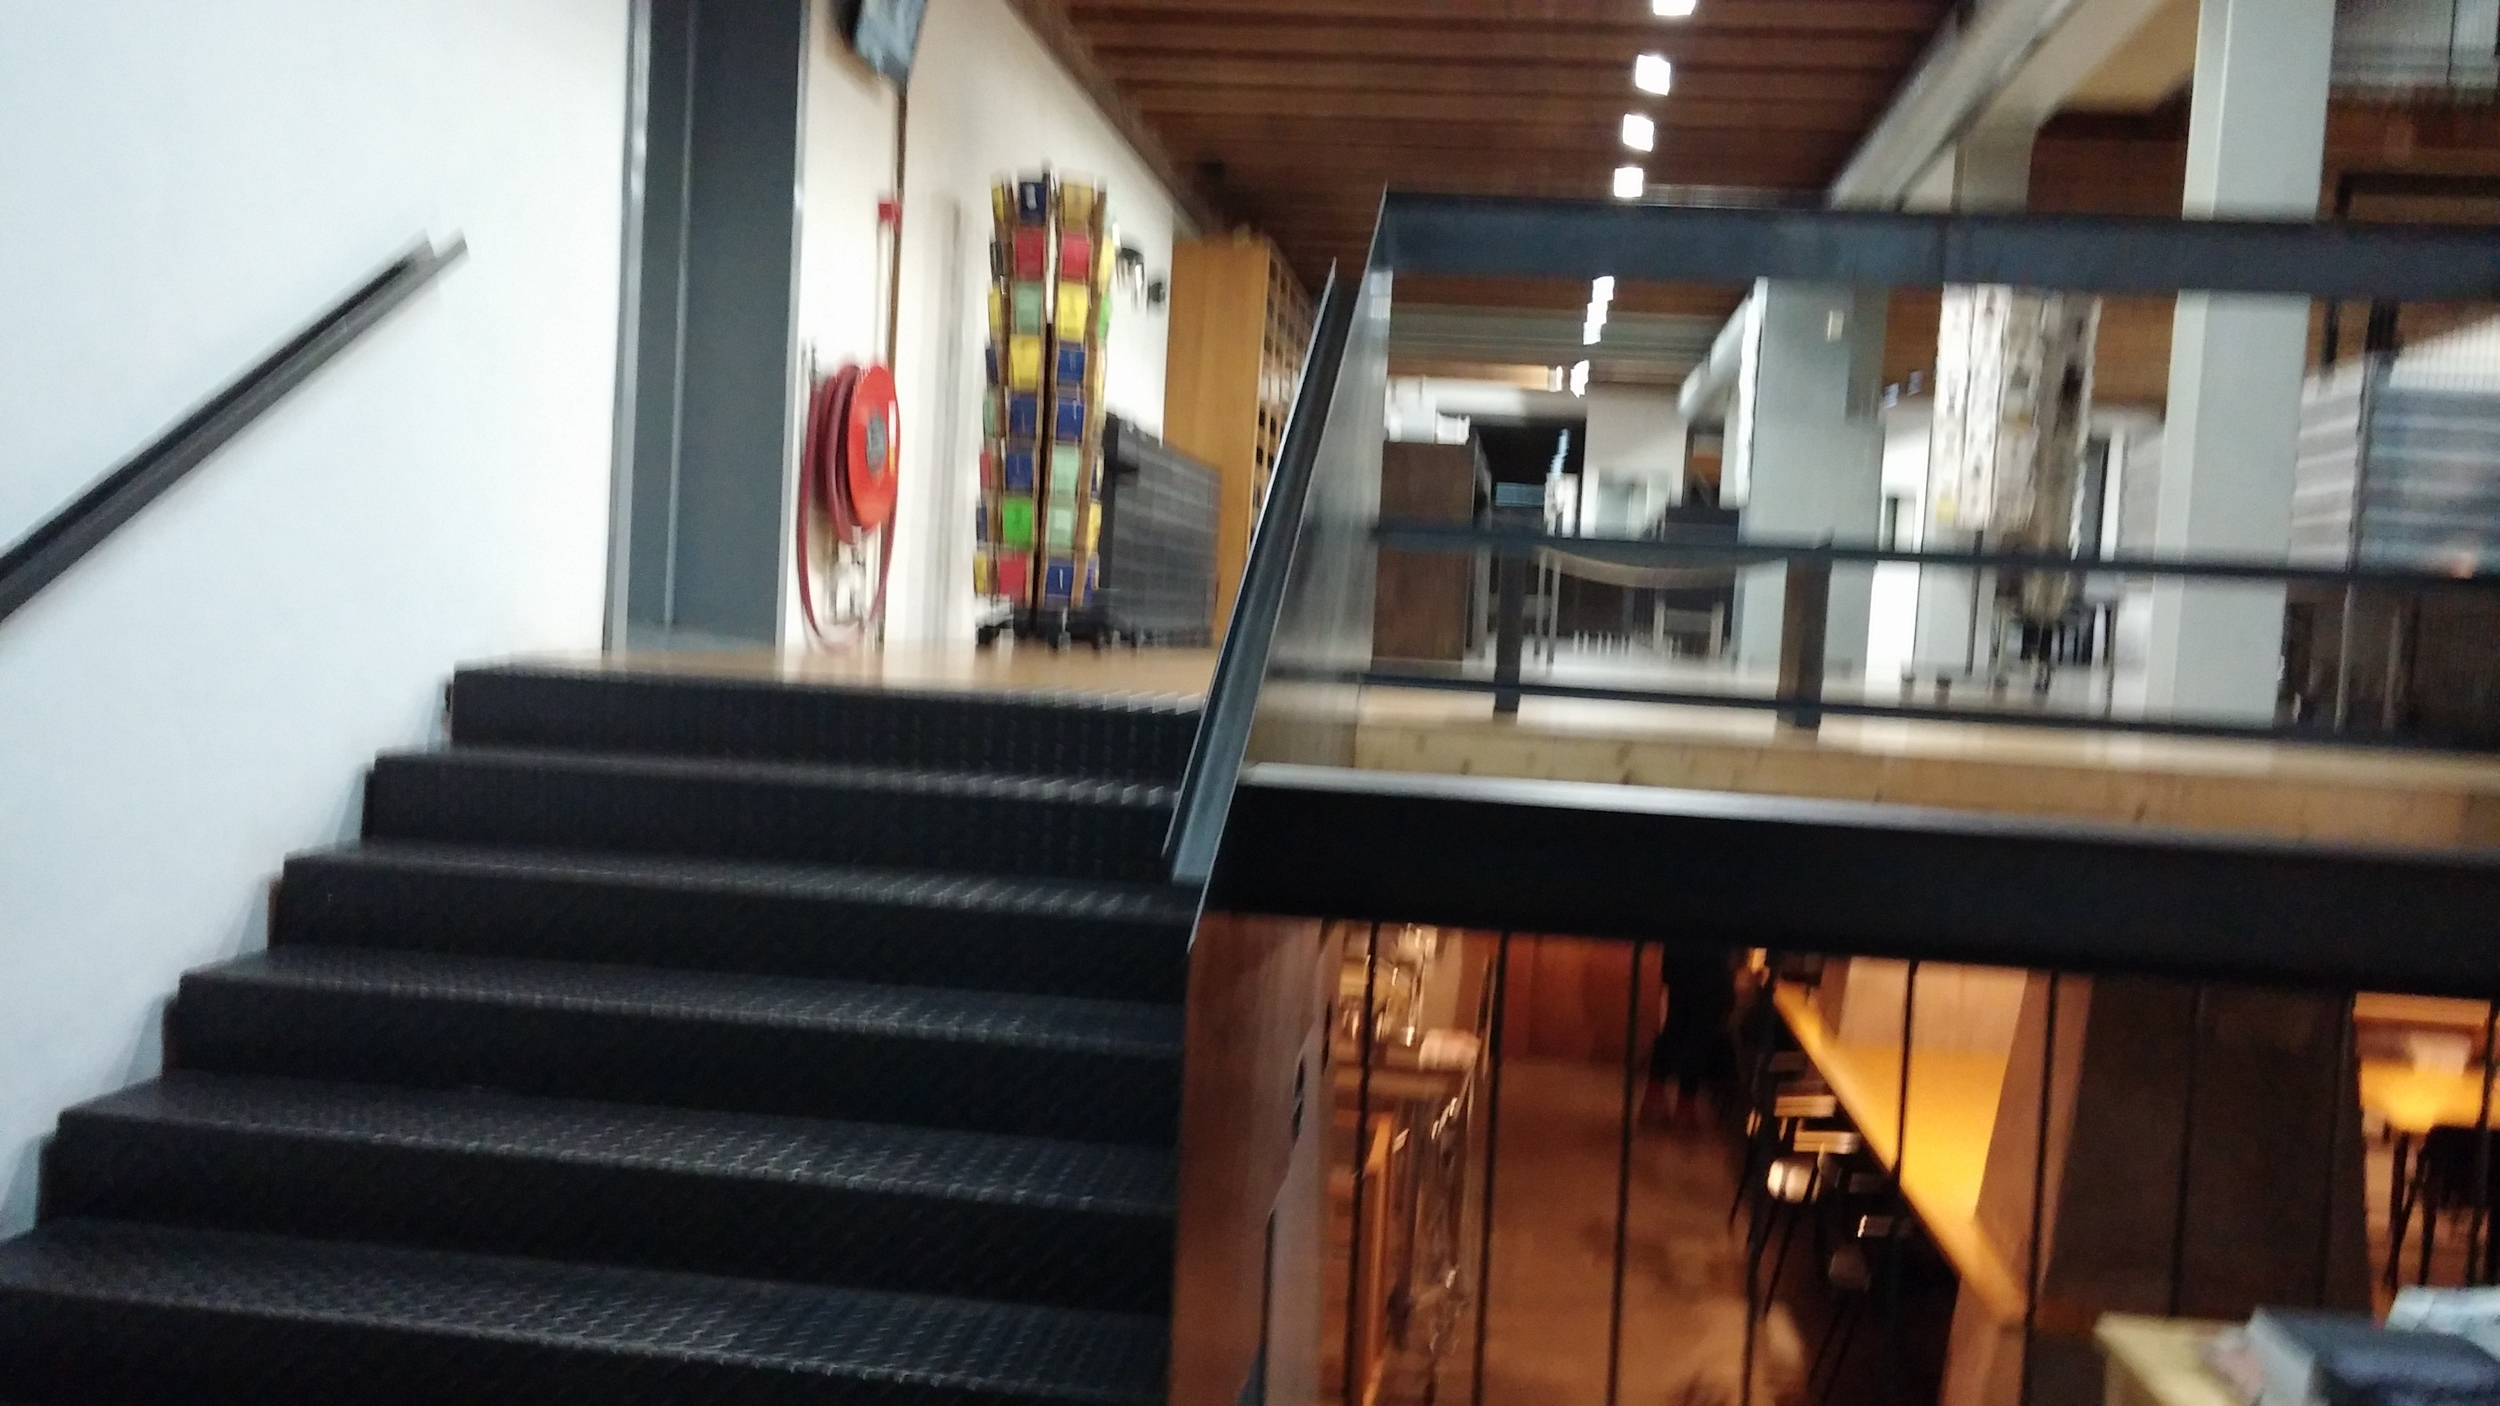 Ground floor and basement of Galerie Marzee (Sorry it's blurry)